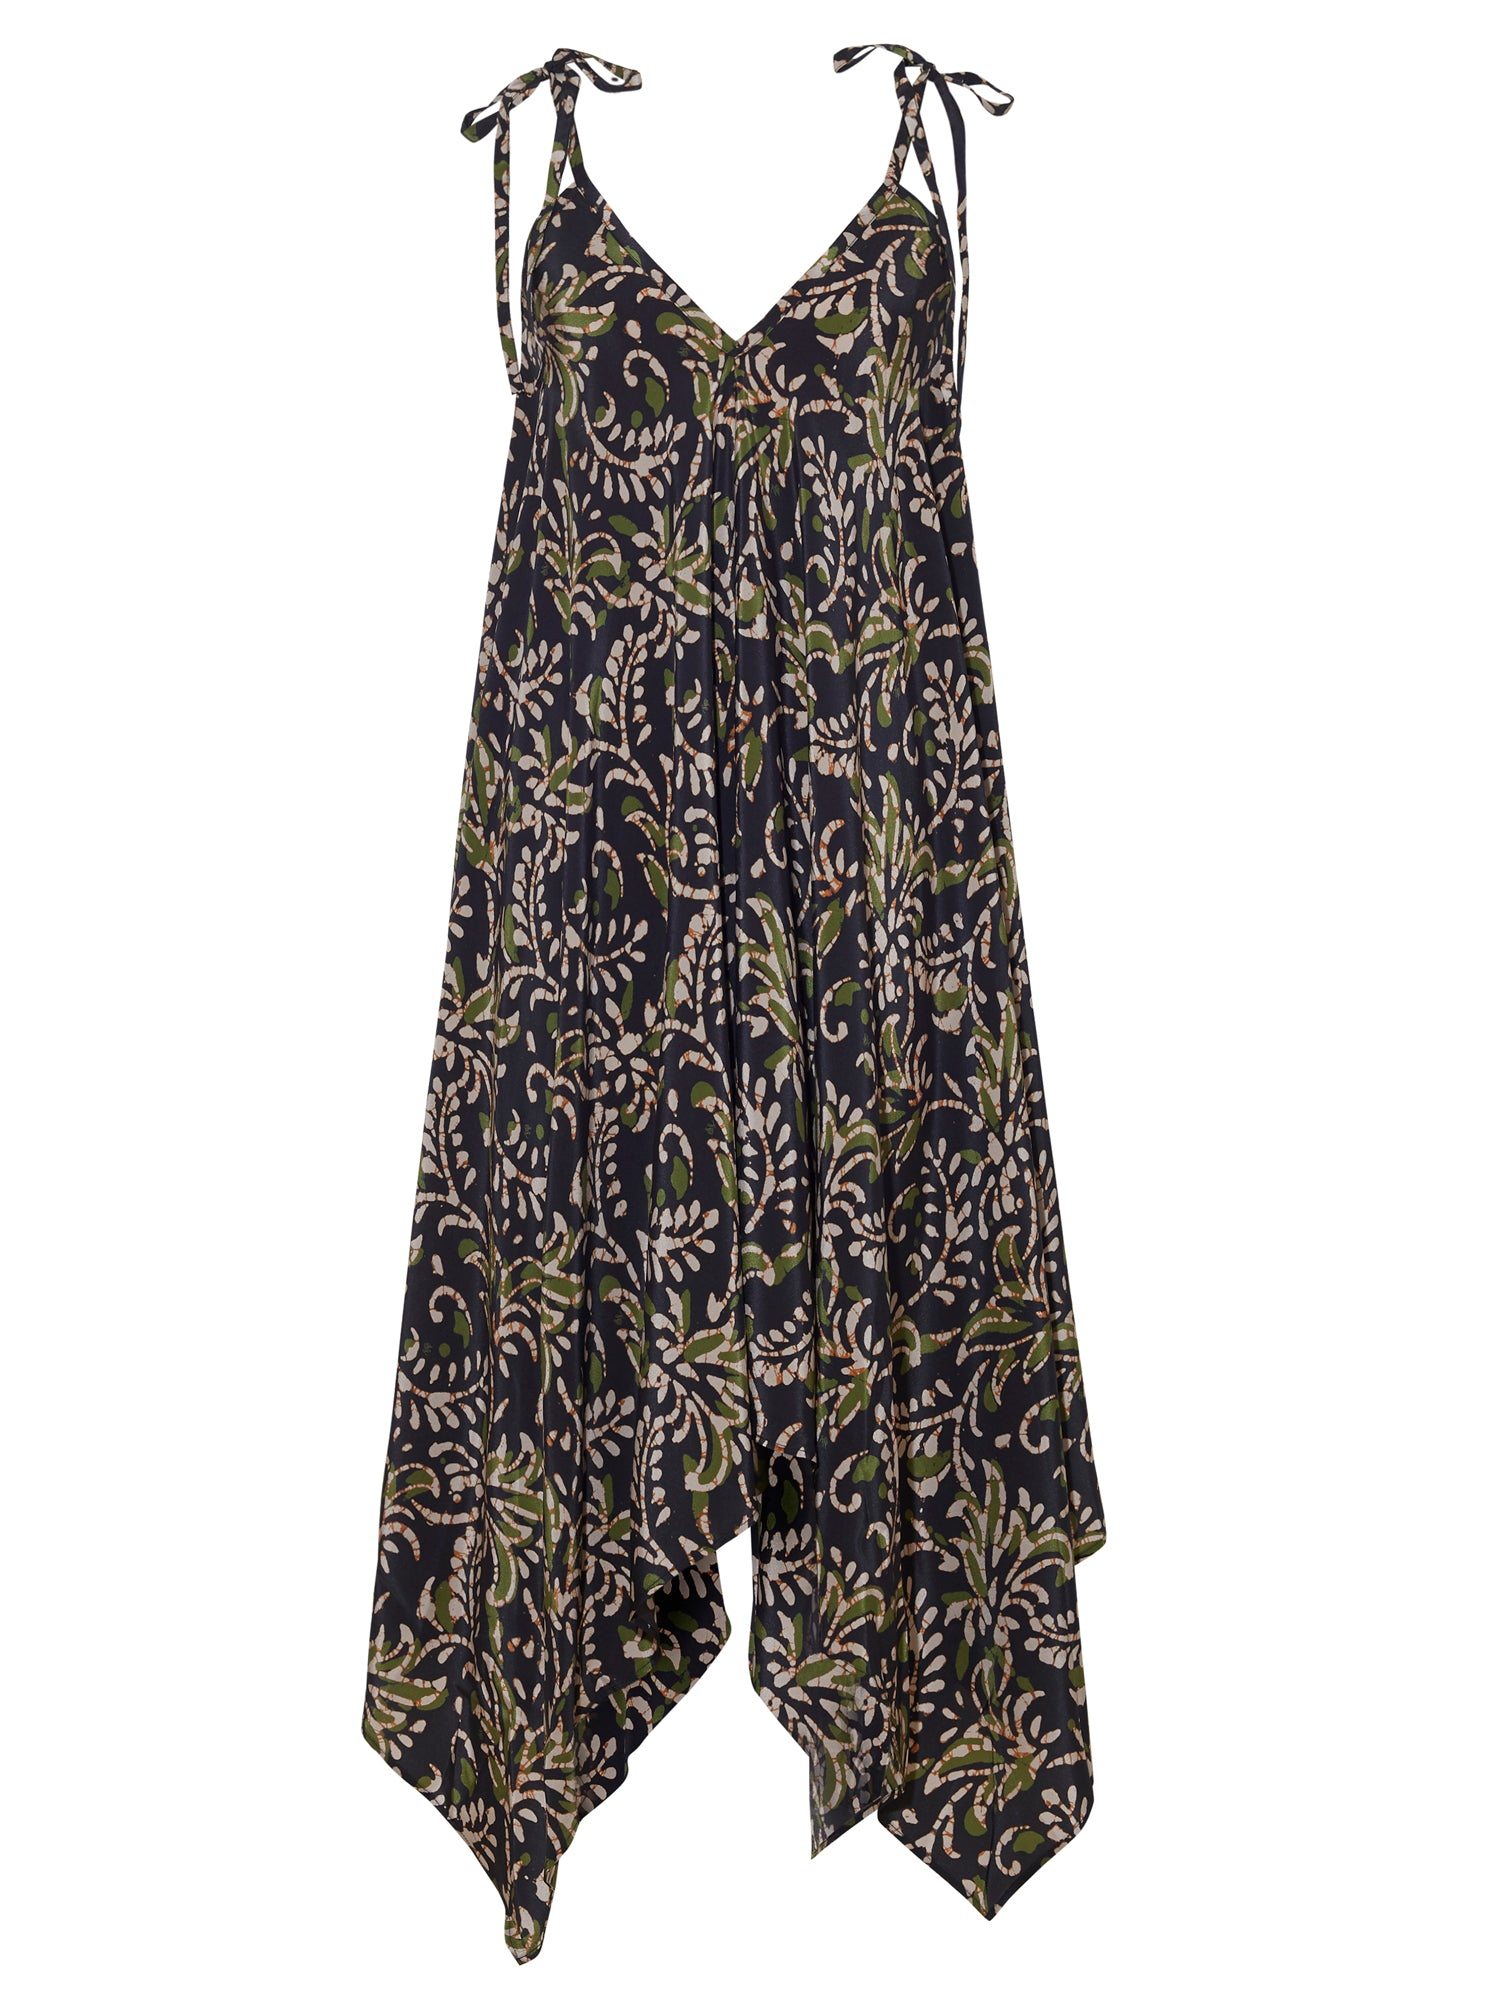 Mallorca Dress | Botswana Print